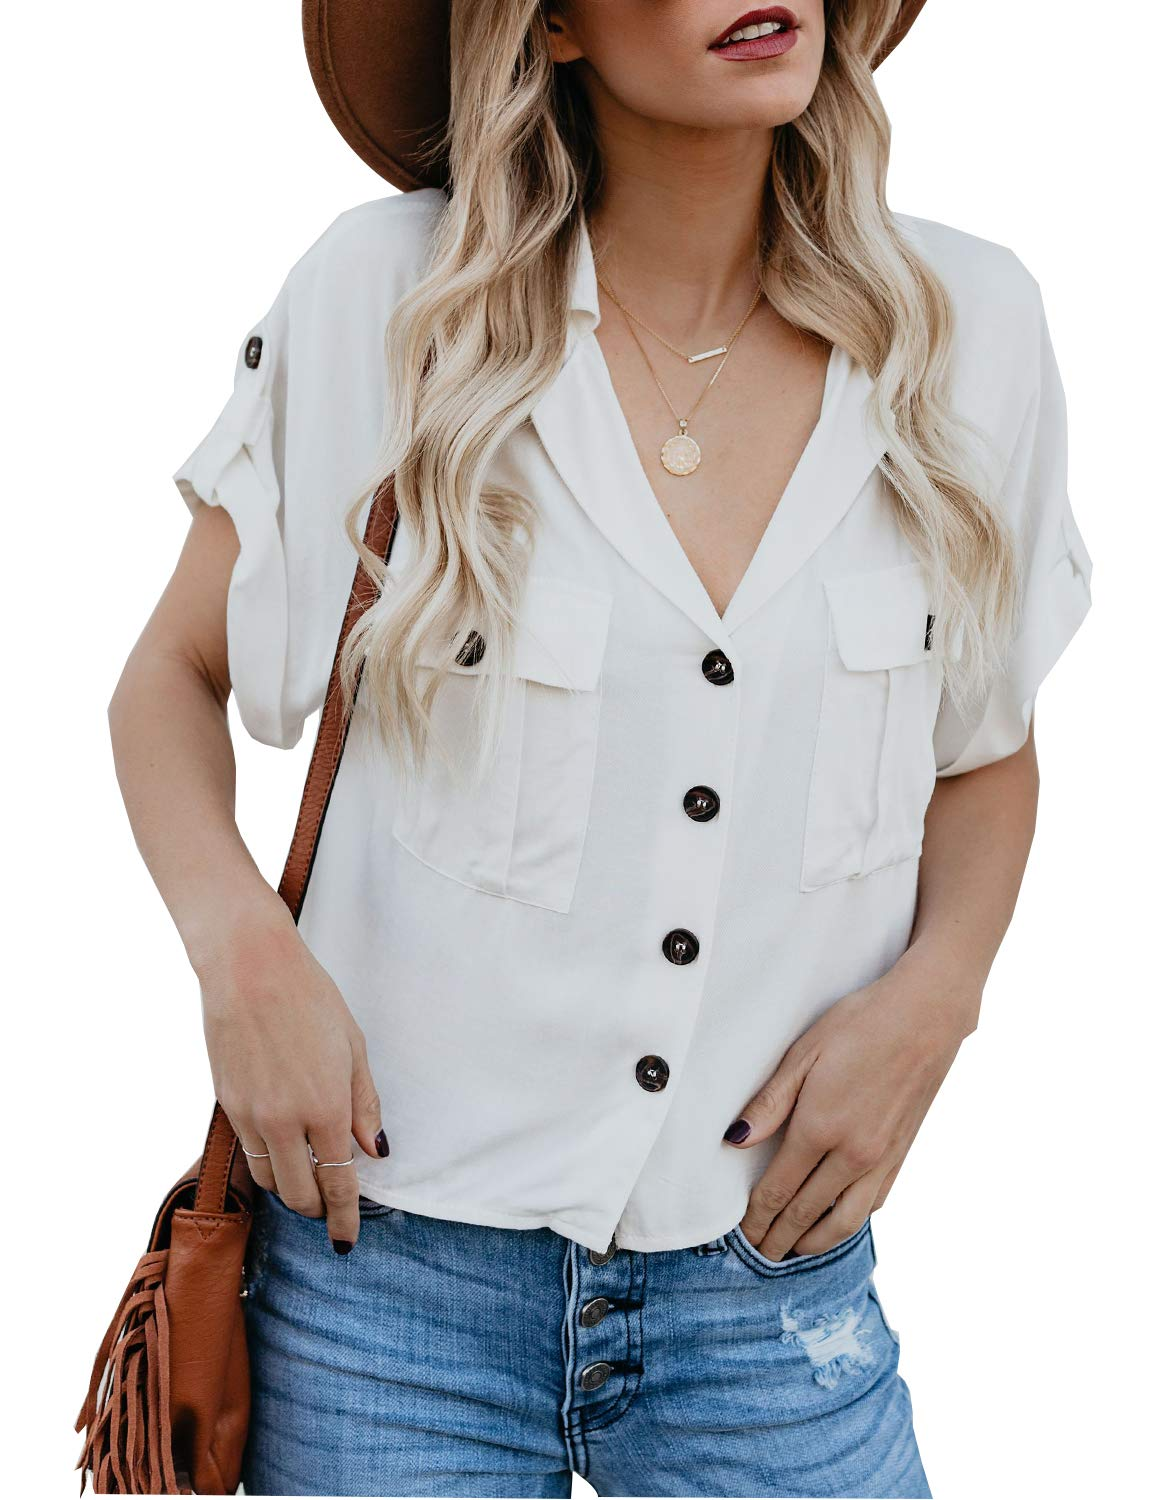 BMJL Women's Solid Button T Shirts Short Sleeve Top Loose Fit Oversize Cuff Edge Summer Tee M White